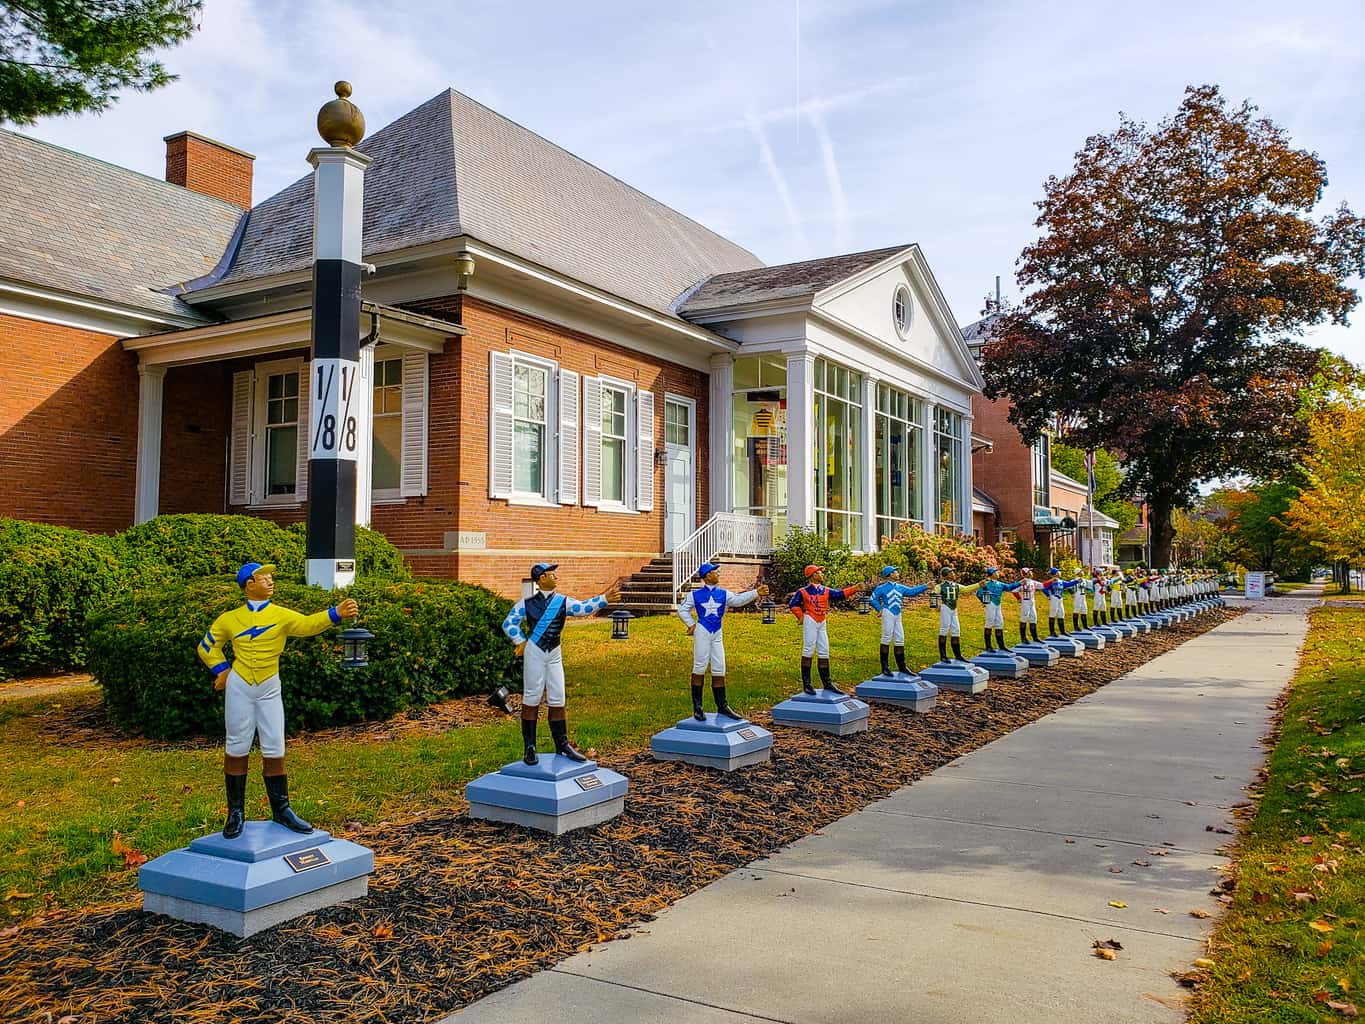 The exterior of the National Museum of Racing and Hall of Fame in Saratoga Springs, NY.